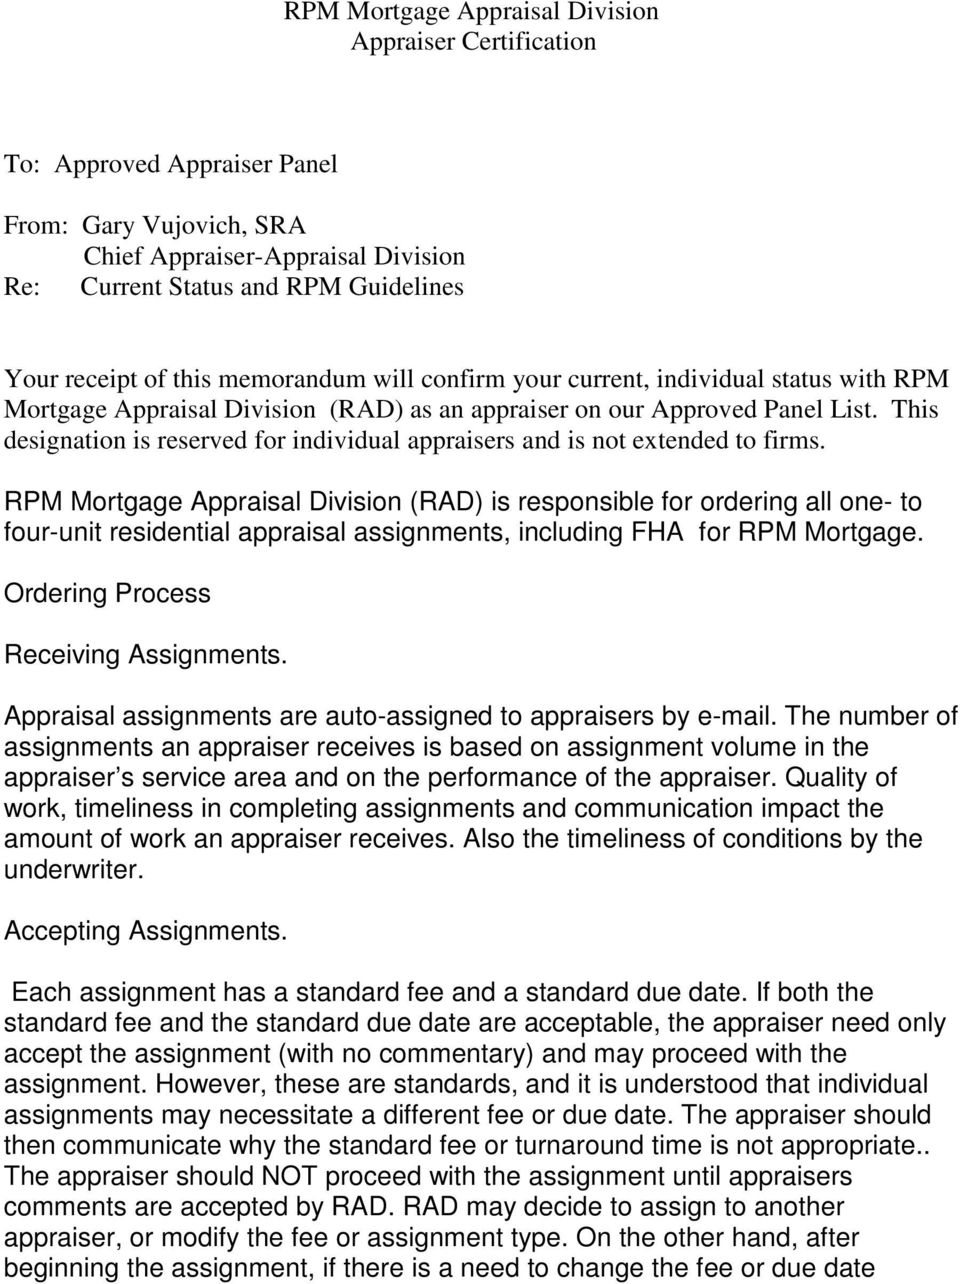 Rpm Mortgage Appraisal Division Appraiser Certification To